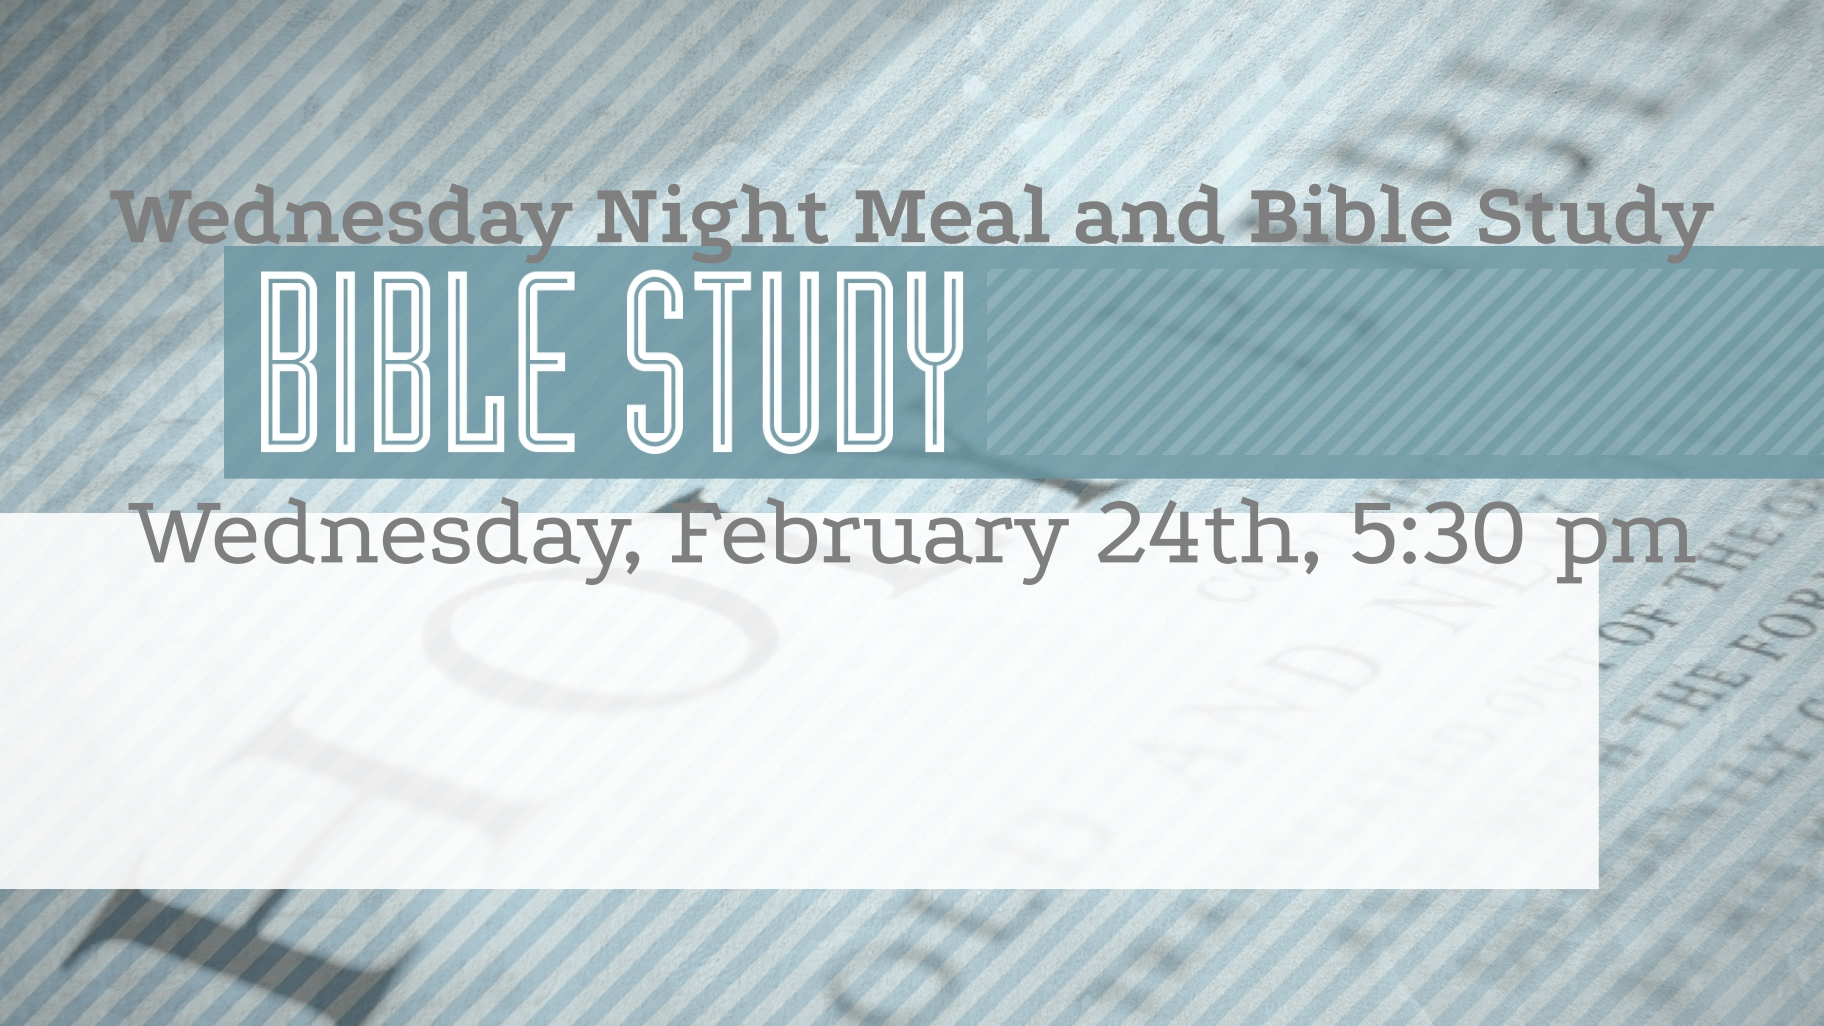 Wednesday Night Meal and Bible Study